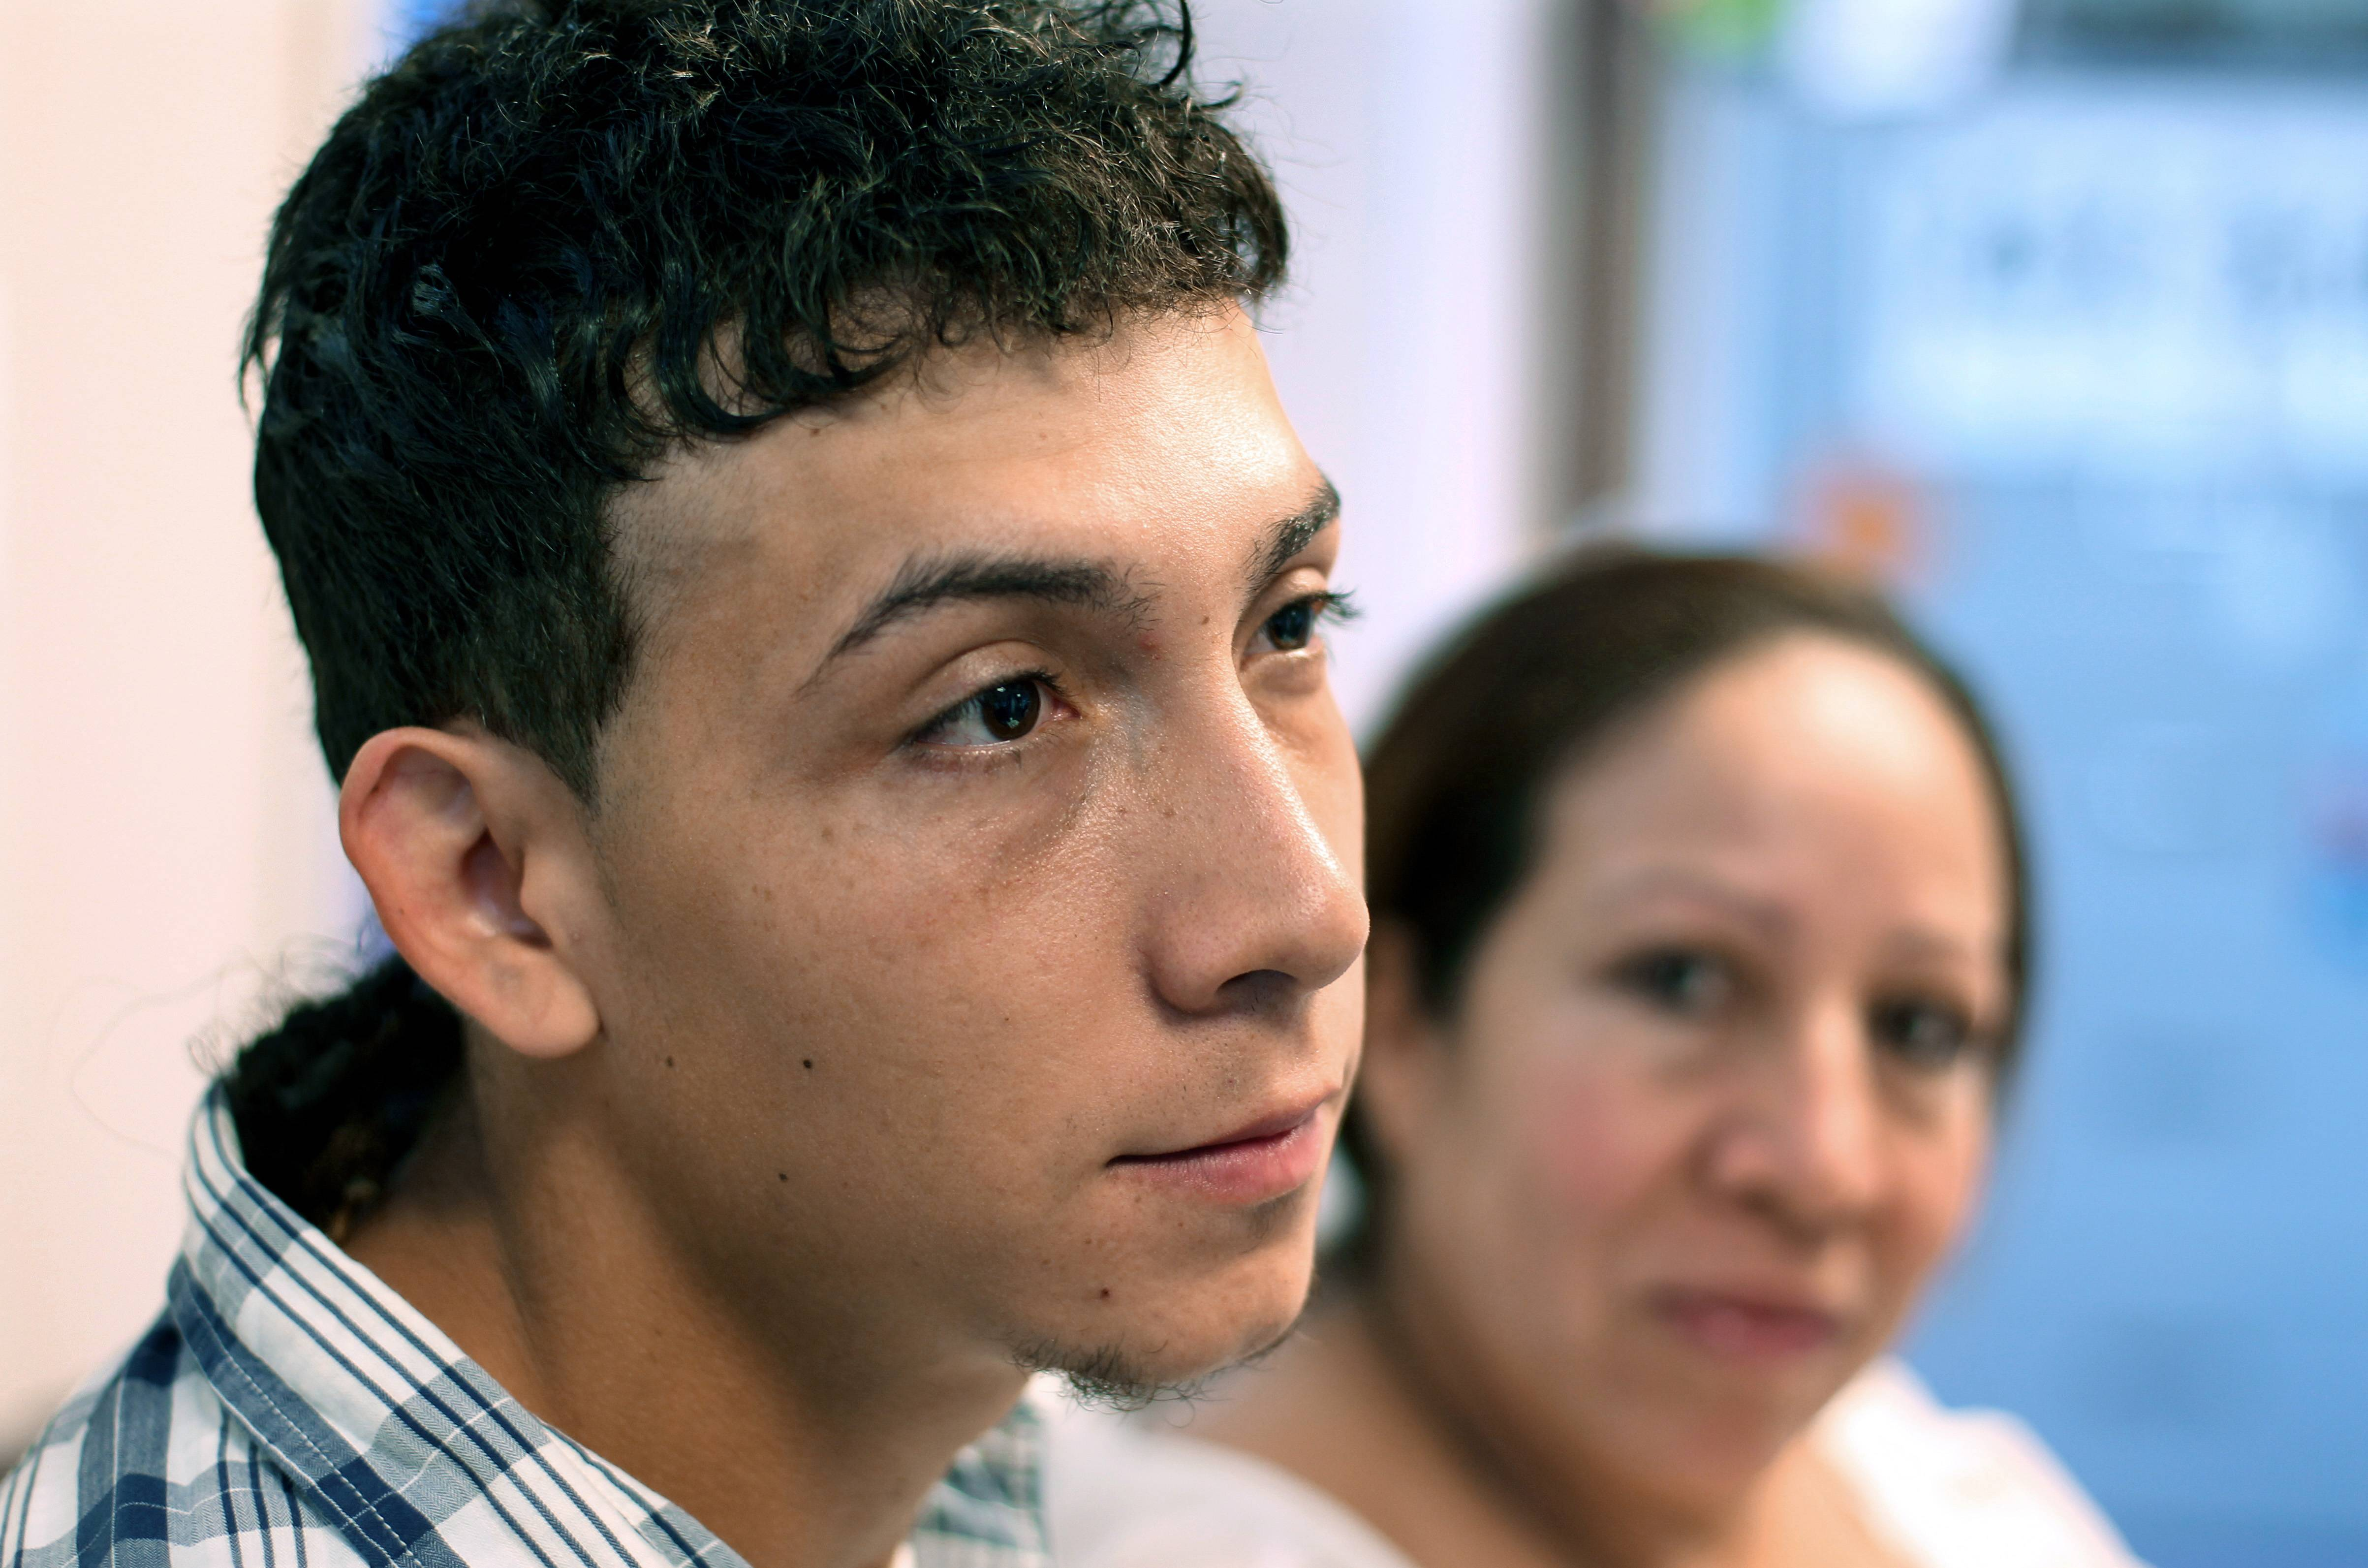 Celvyn Mejia Romero prepares to respond to a question last Sunday during an interview as his mother Susana Romero looks on at the Greater Boston Lega